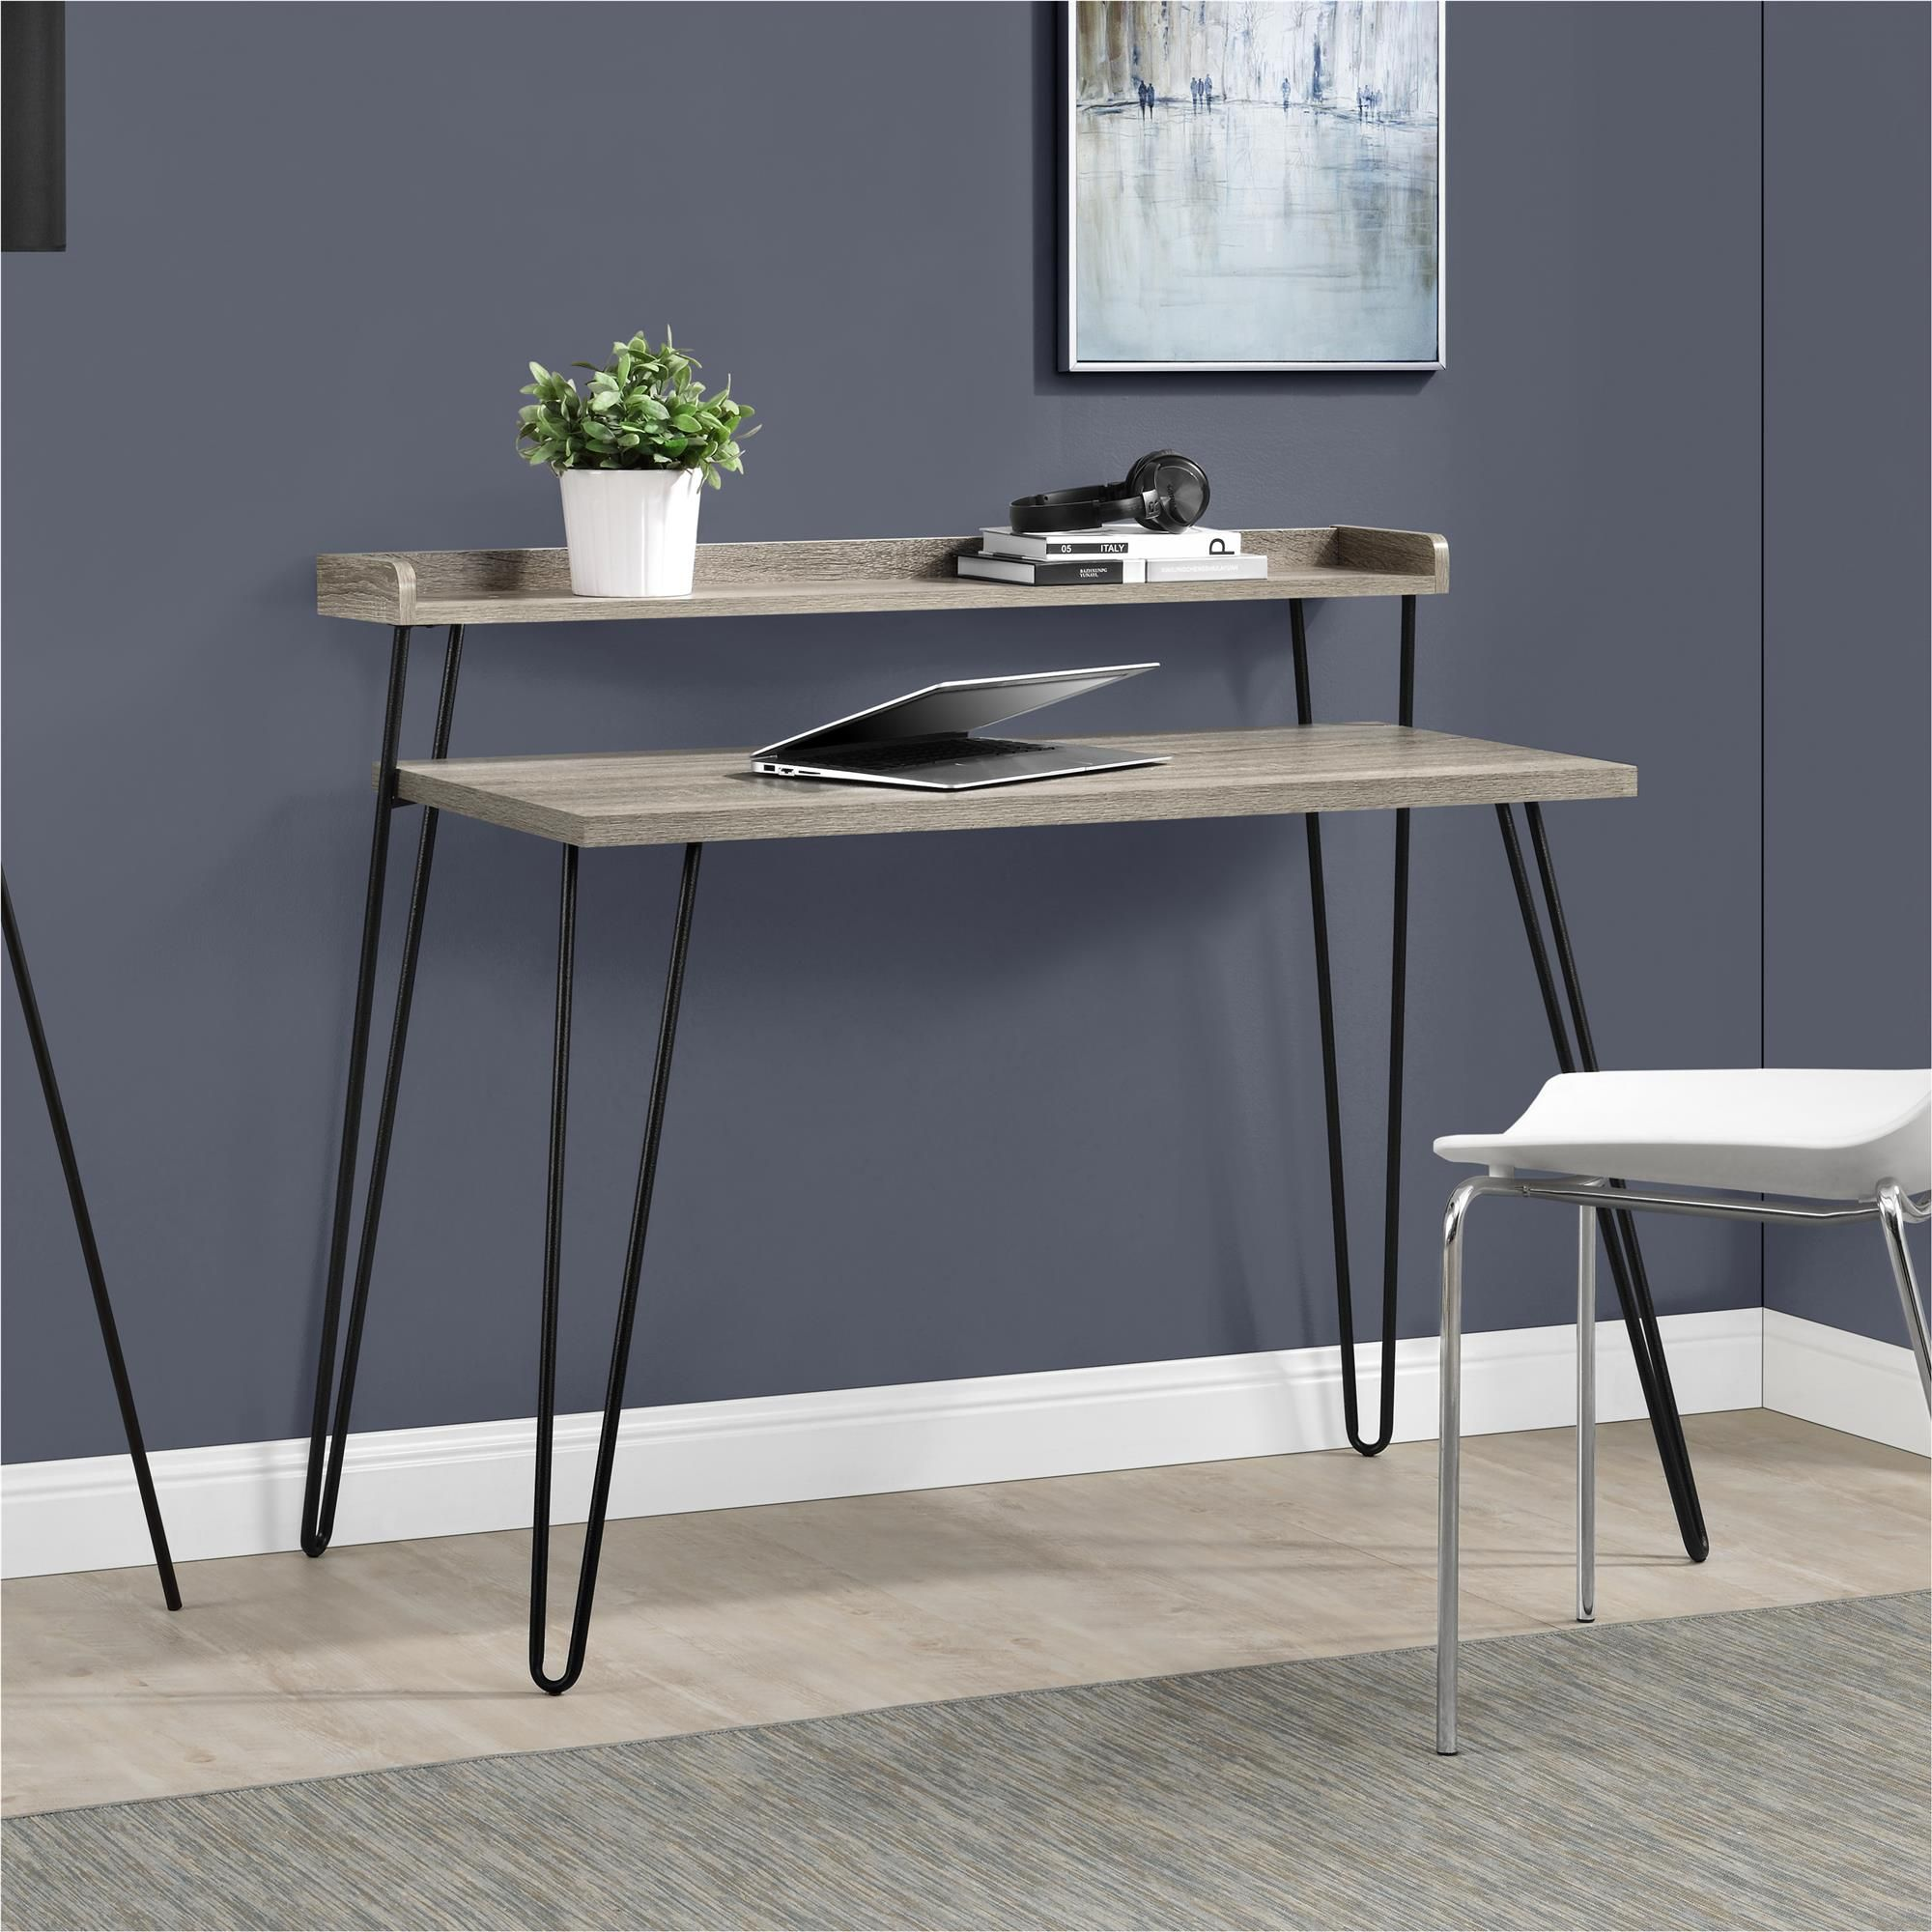 Good Dorel Home Furnishings Haven Sonoma Oak/Gunmetal Gray Retro Desk With  Riser, Beige U0026 Idea